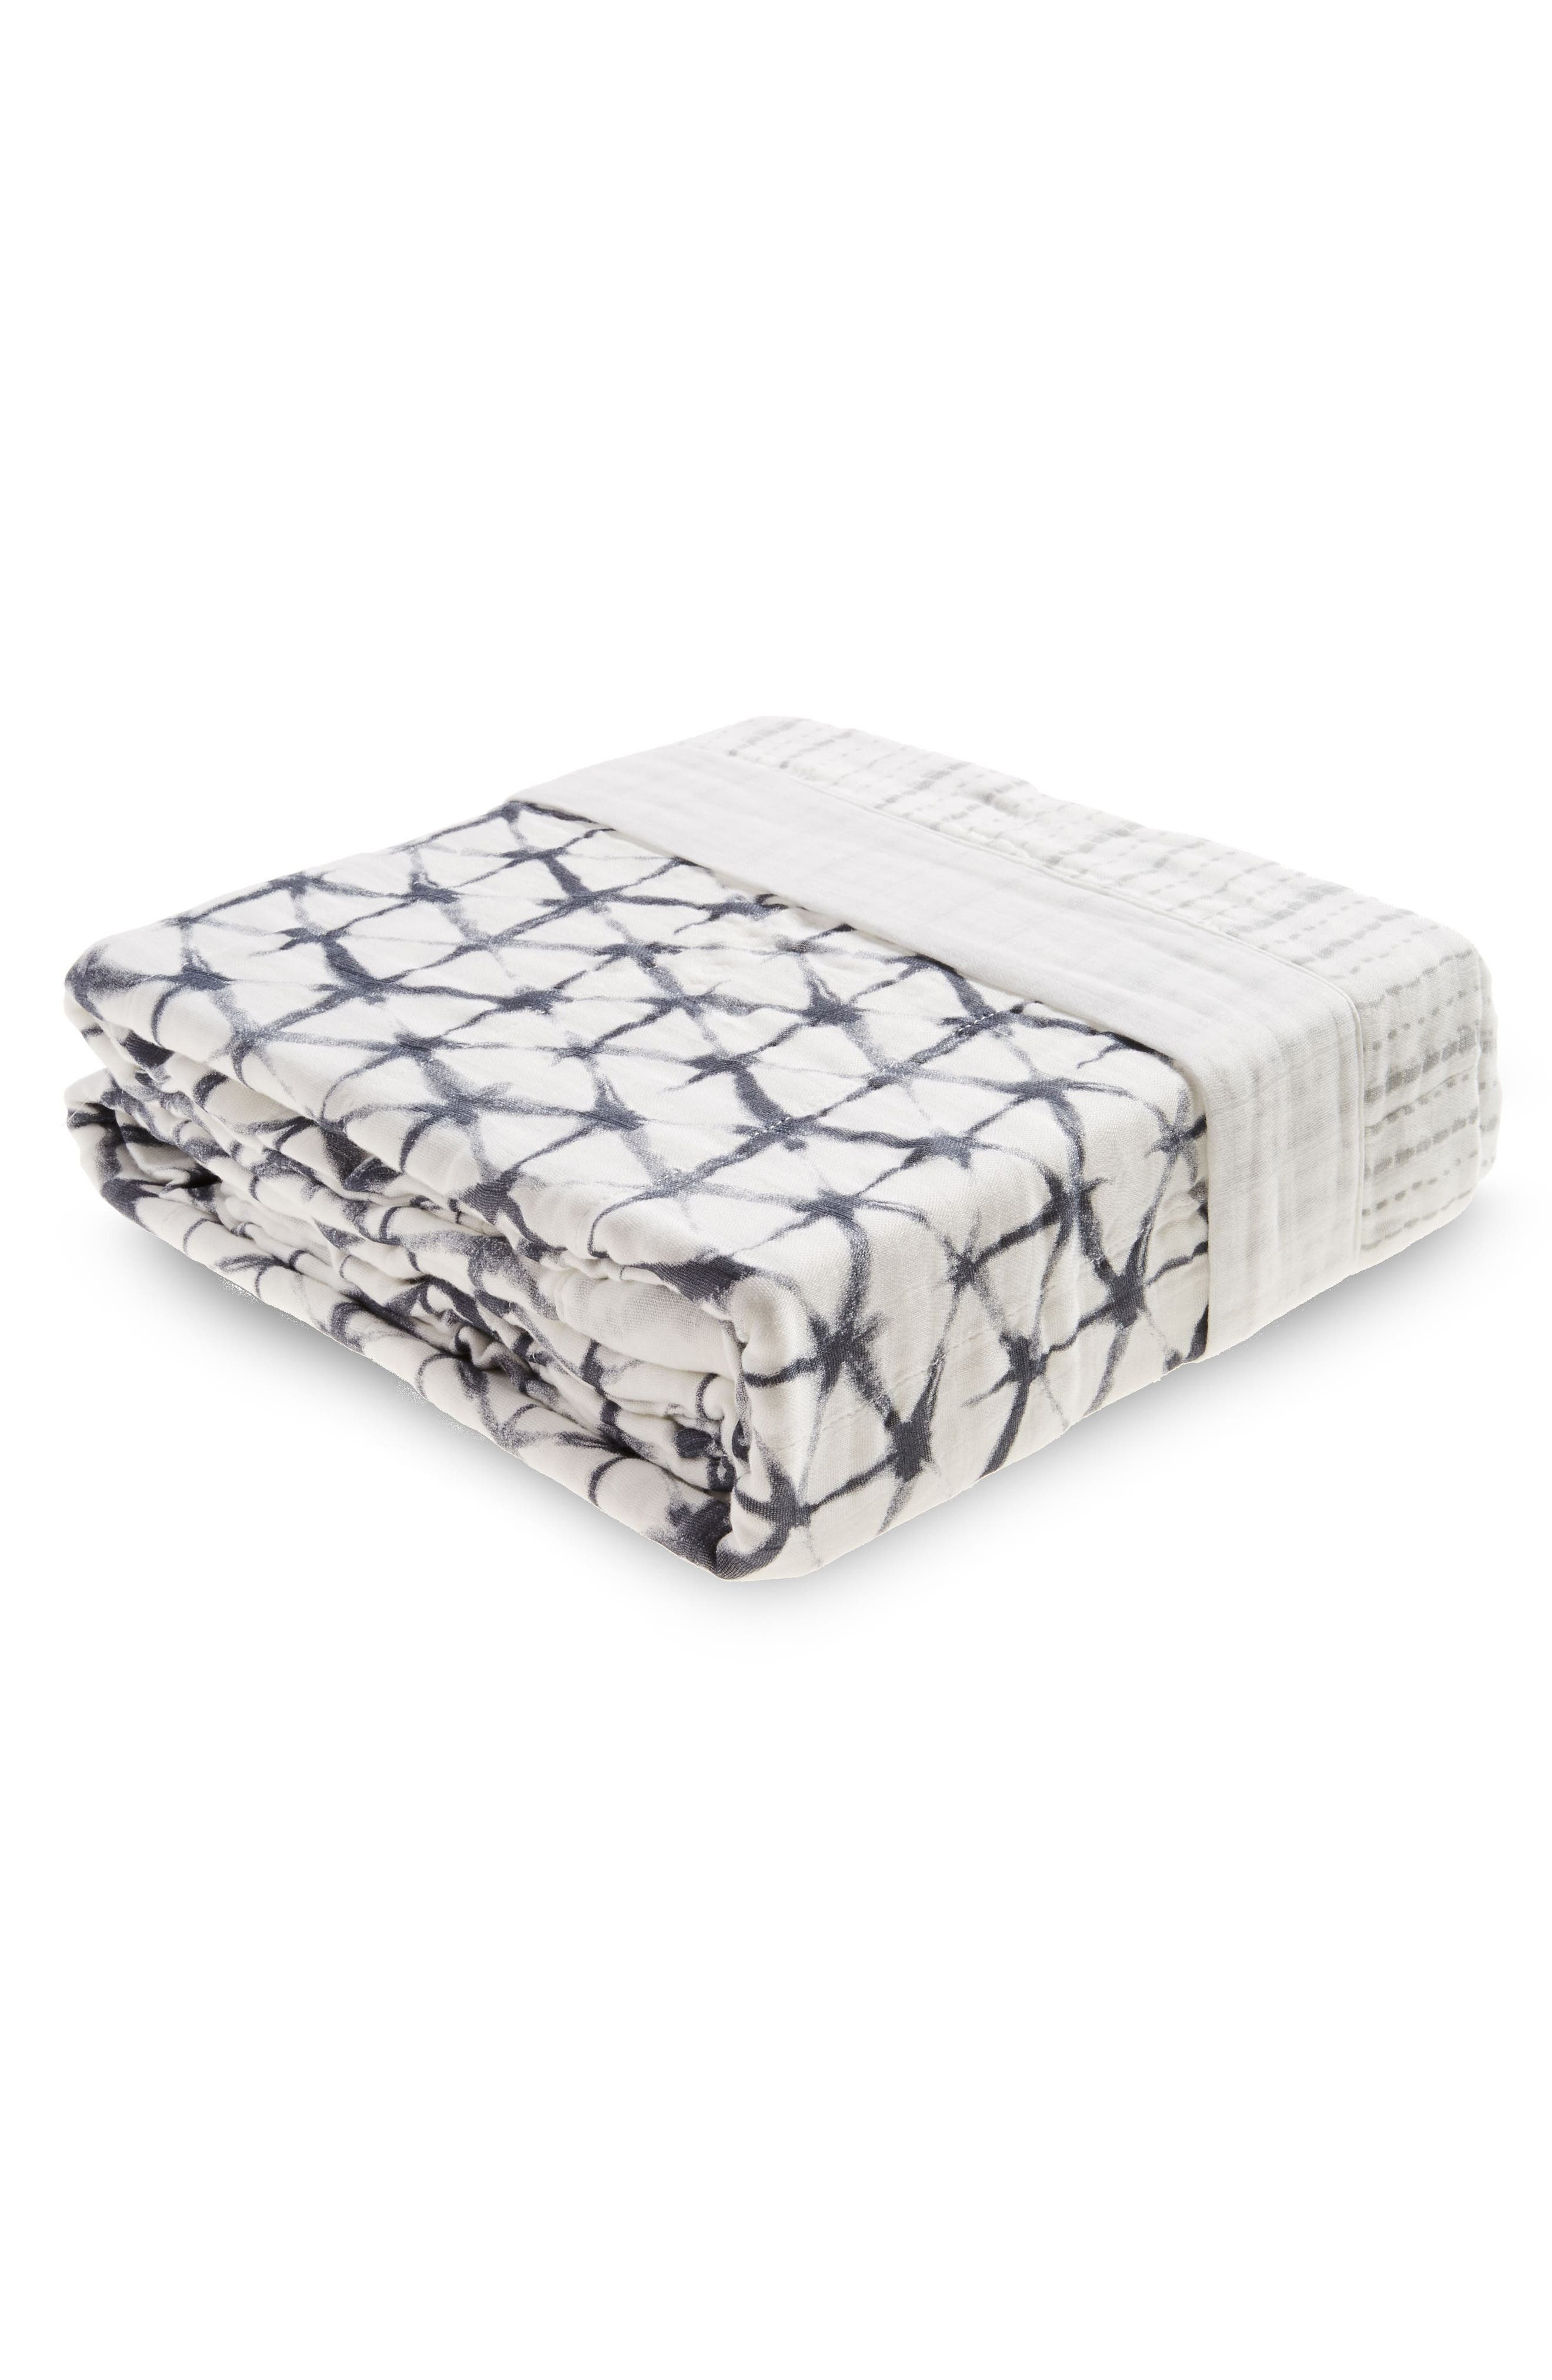 Oversize Muslin Blanket,                         Main,                         color, PEBBLE SHIBORI